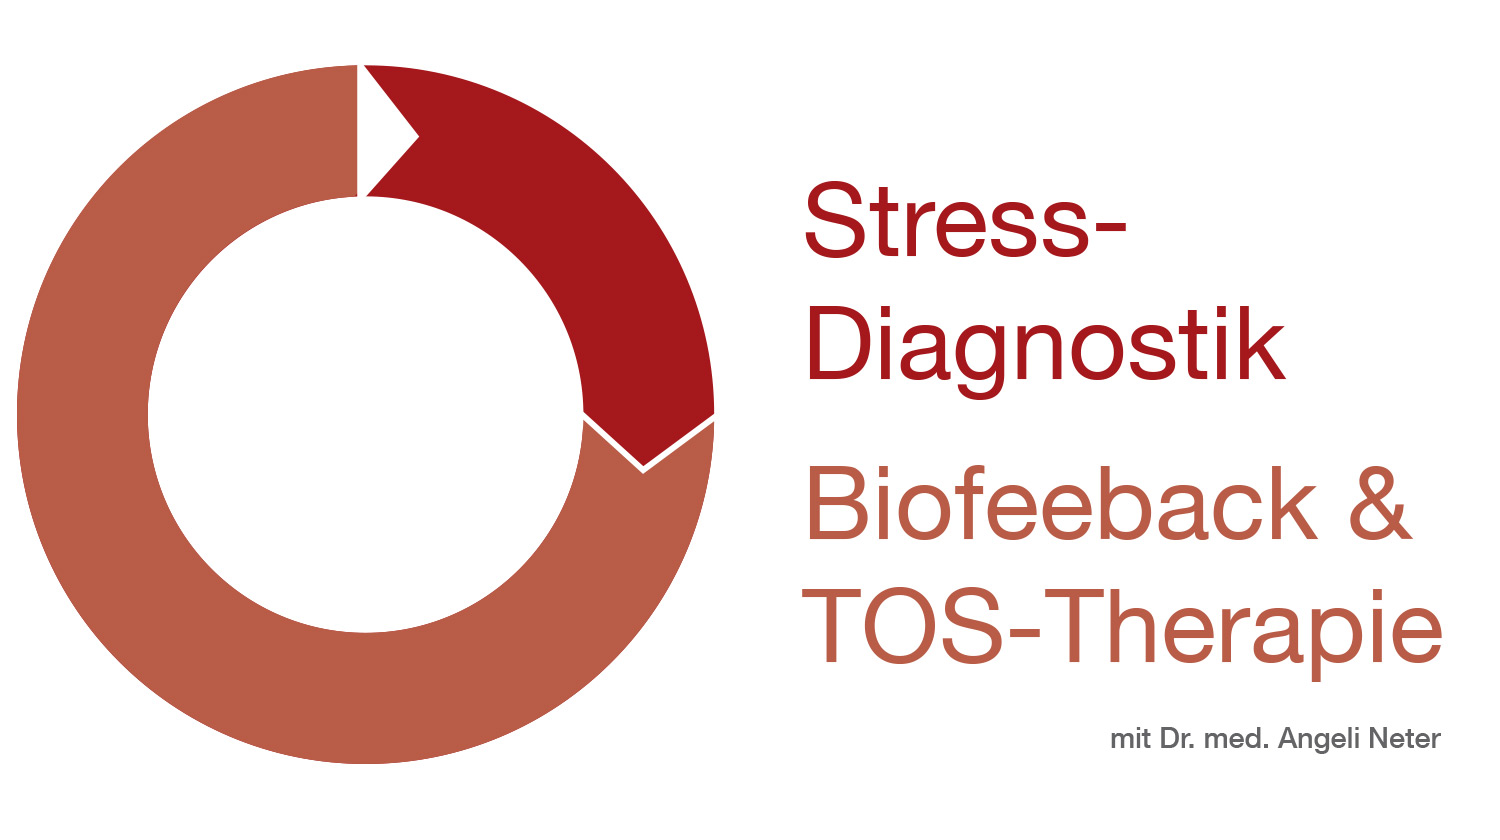 berblick Biofeedback & TOS-Therapie, Dr. med. A. Neter